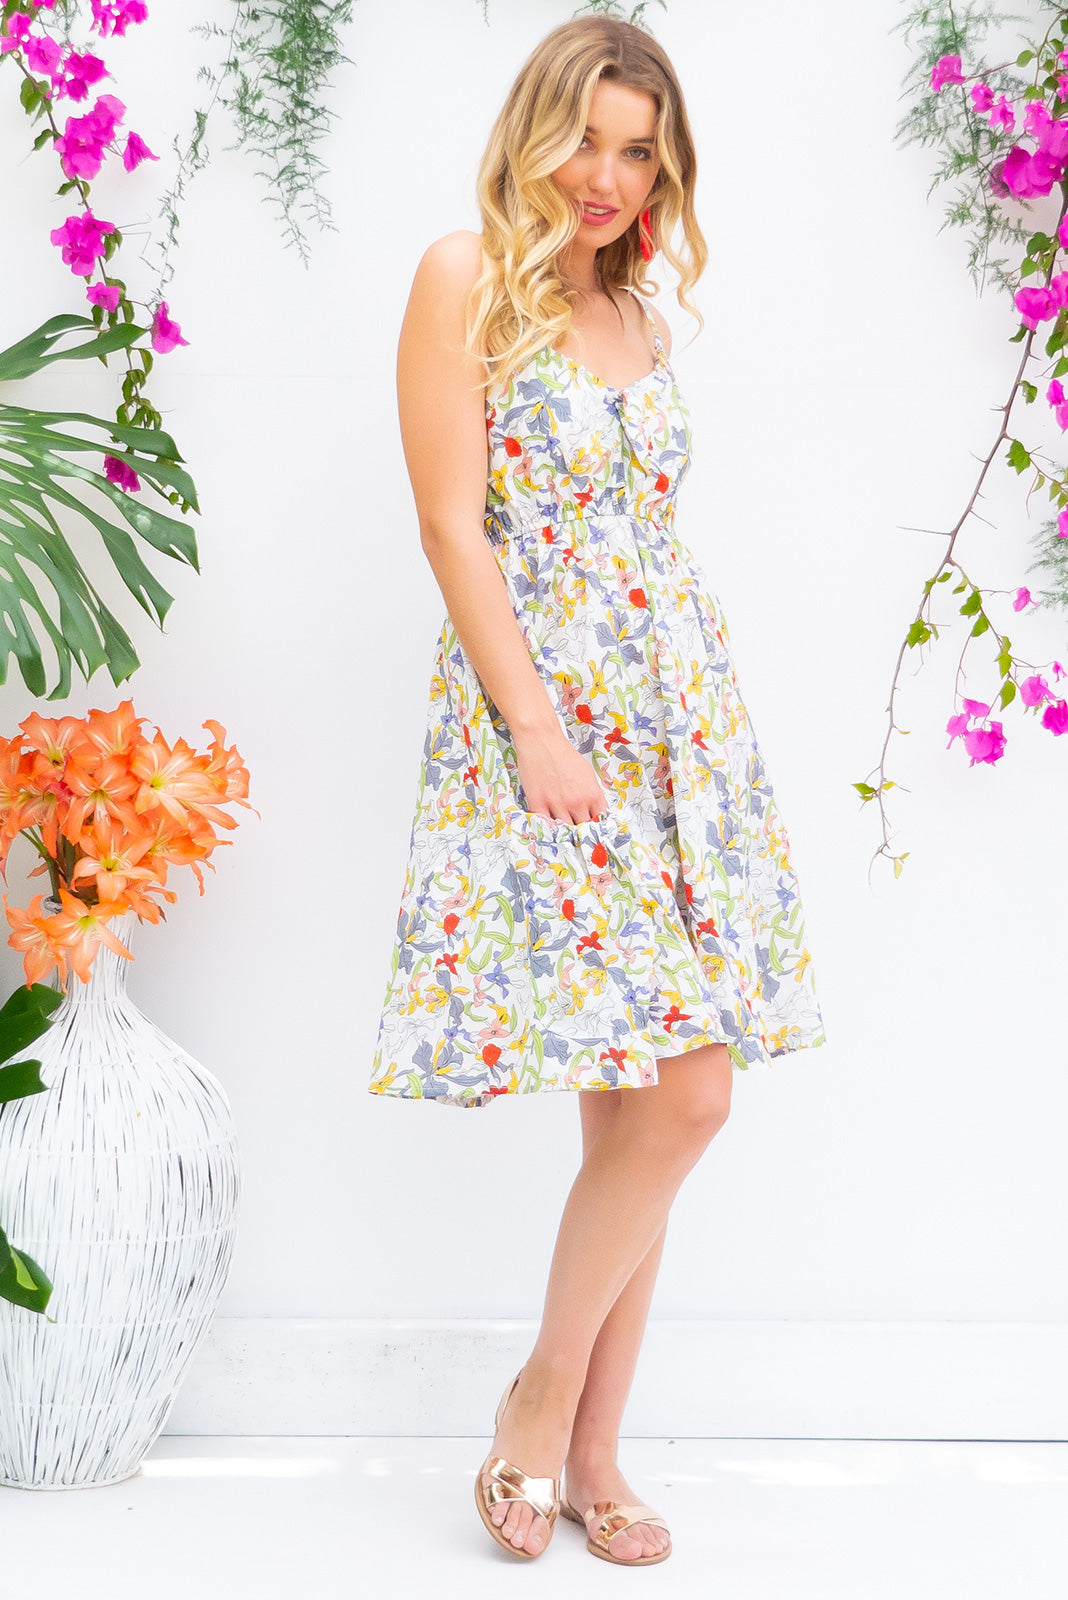 Windfall Bright Garden Dress in White woven 100% cotton with adjustable straps, drawstring bust and deep pockets